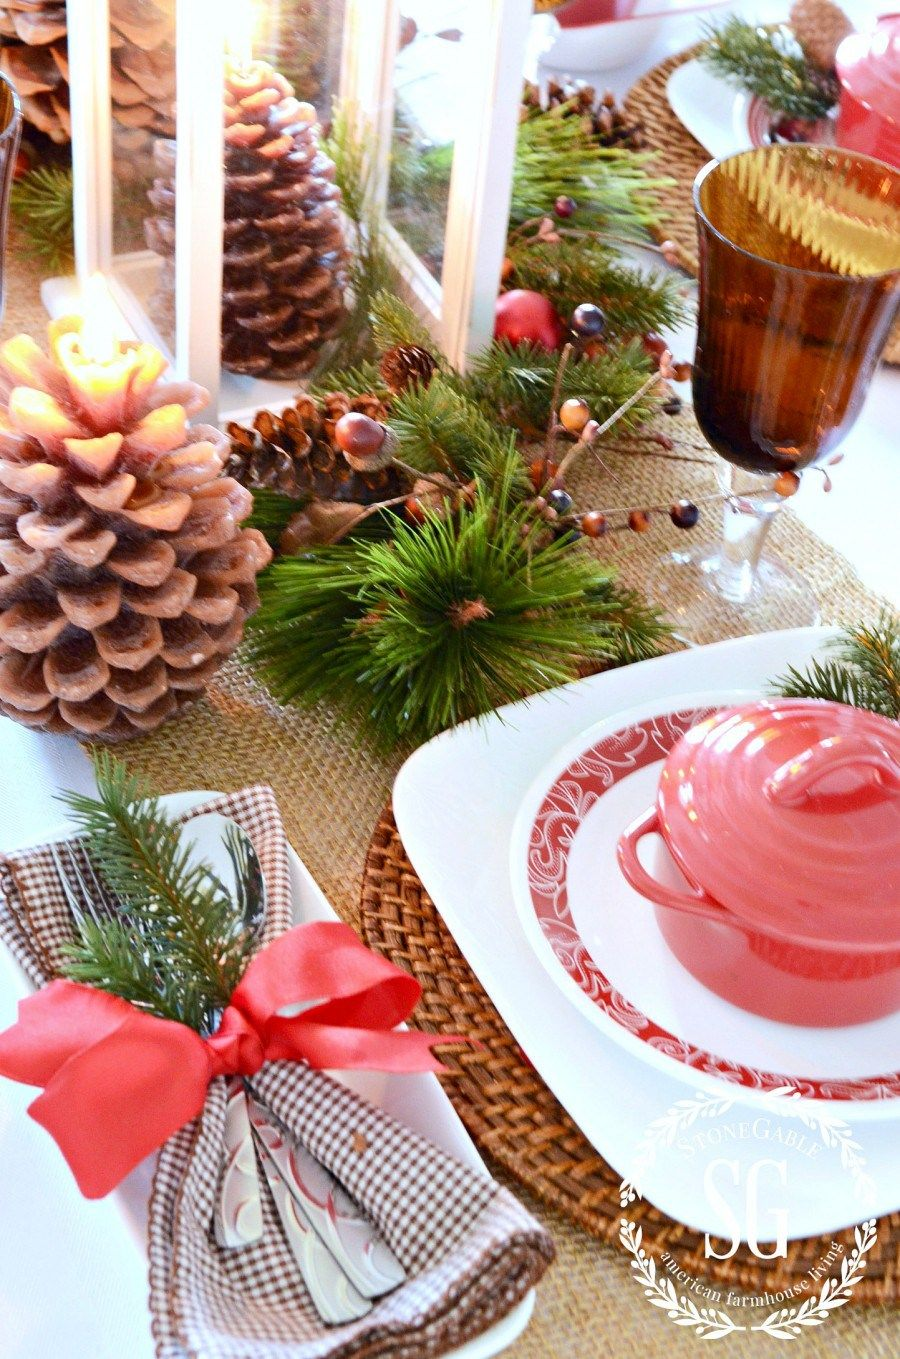 10 TIPS FOR SETTING A CHRISTMAS TABLE Rustic